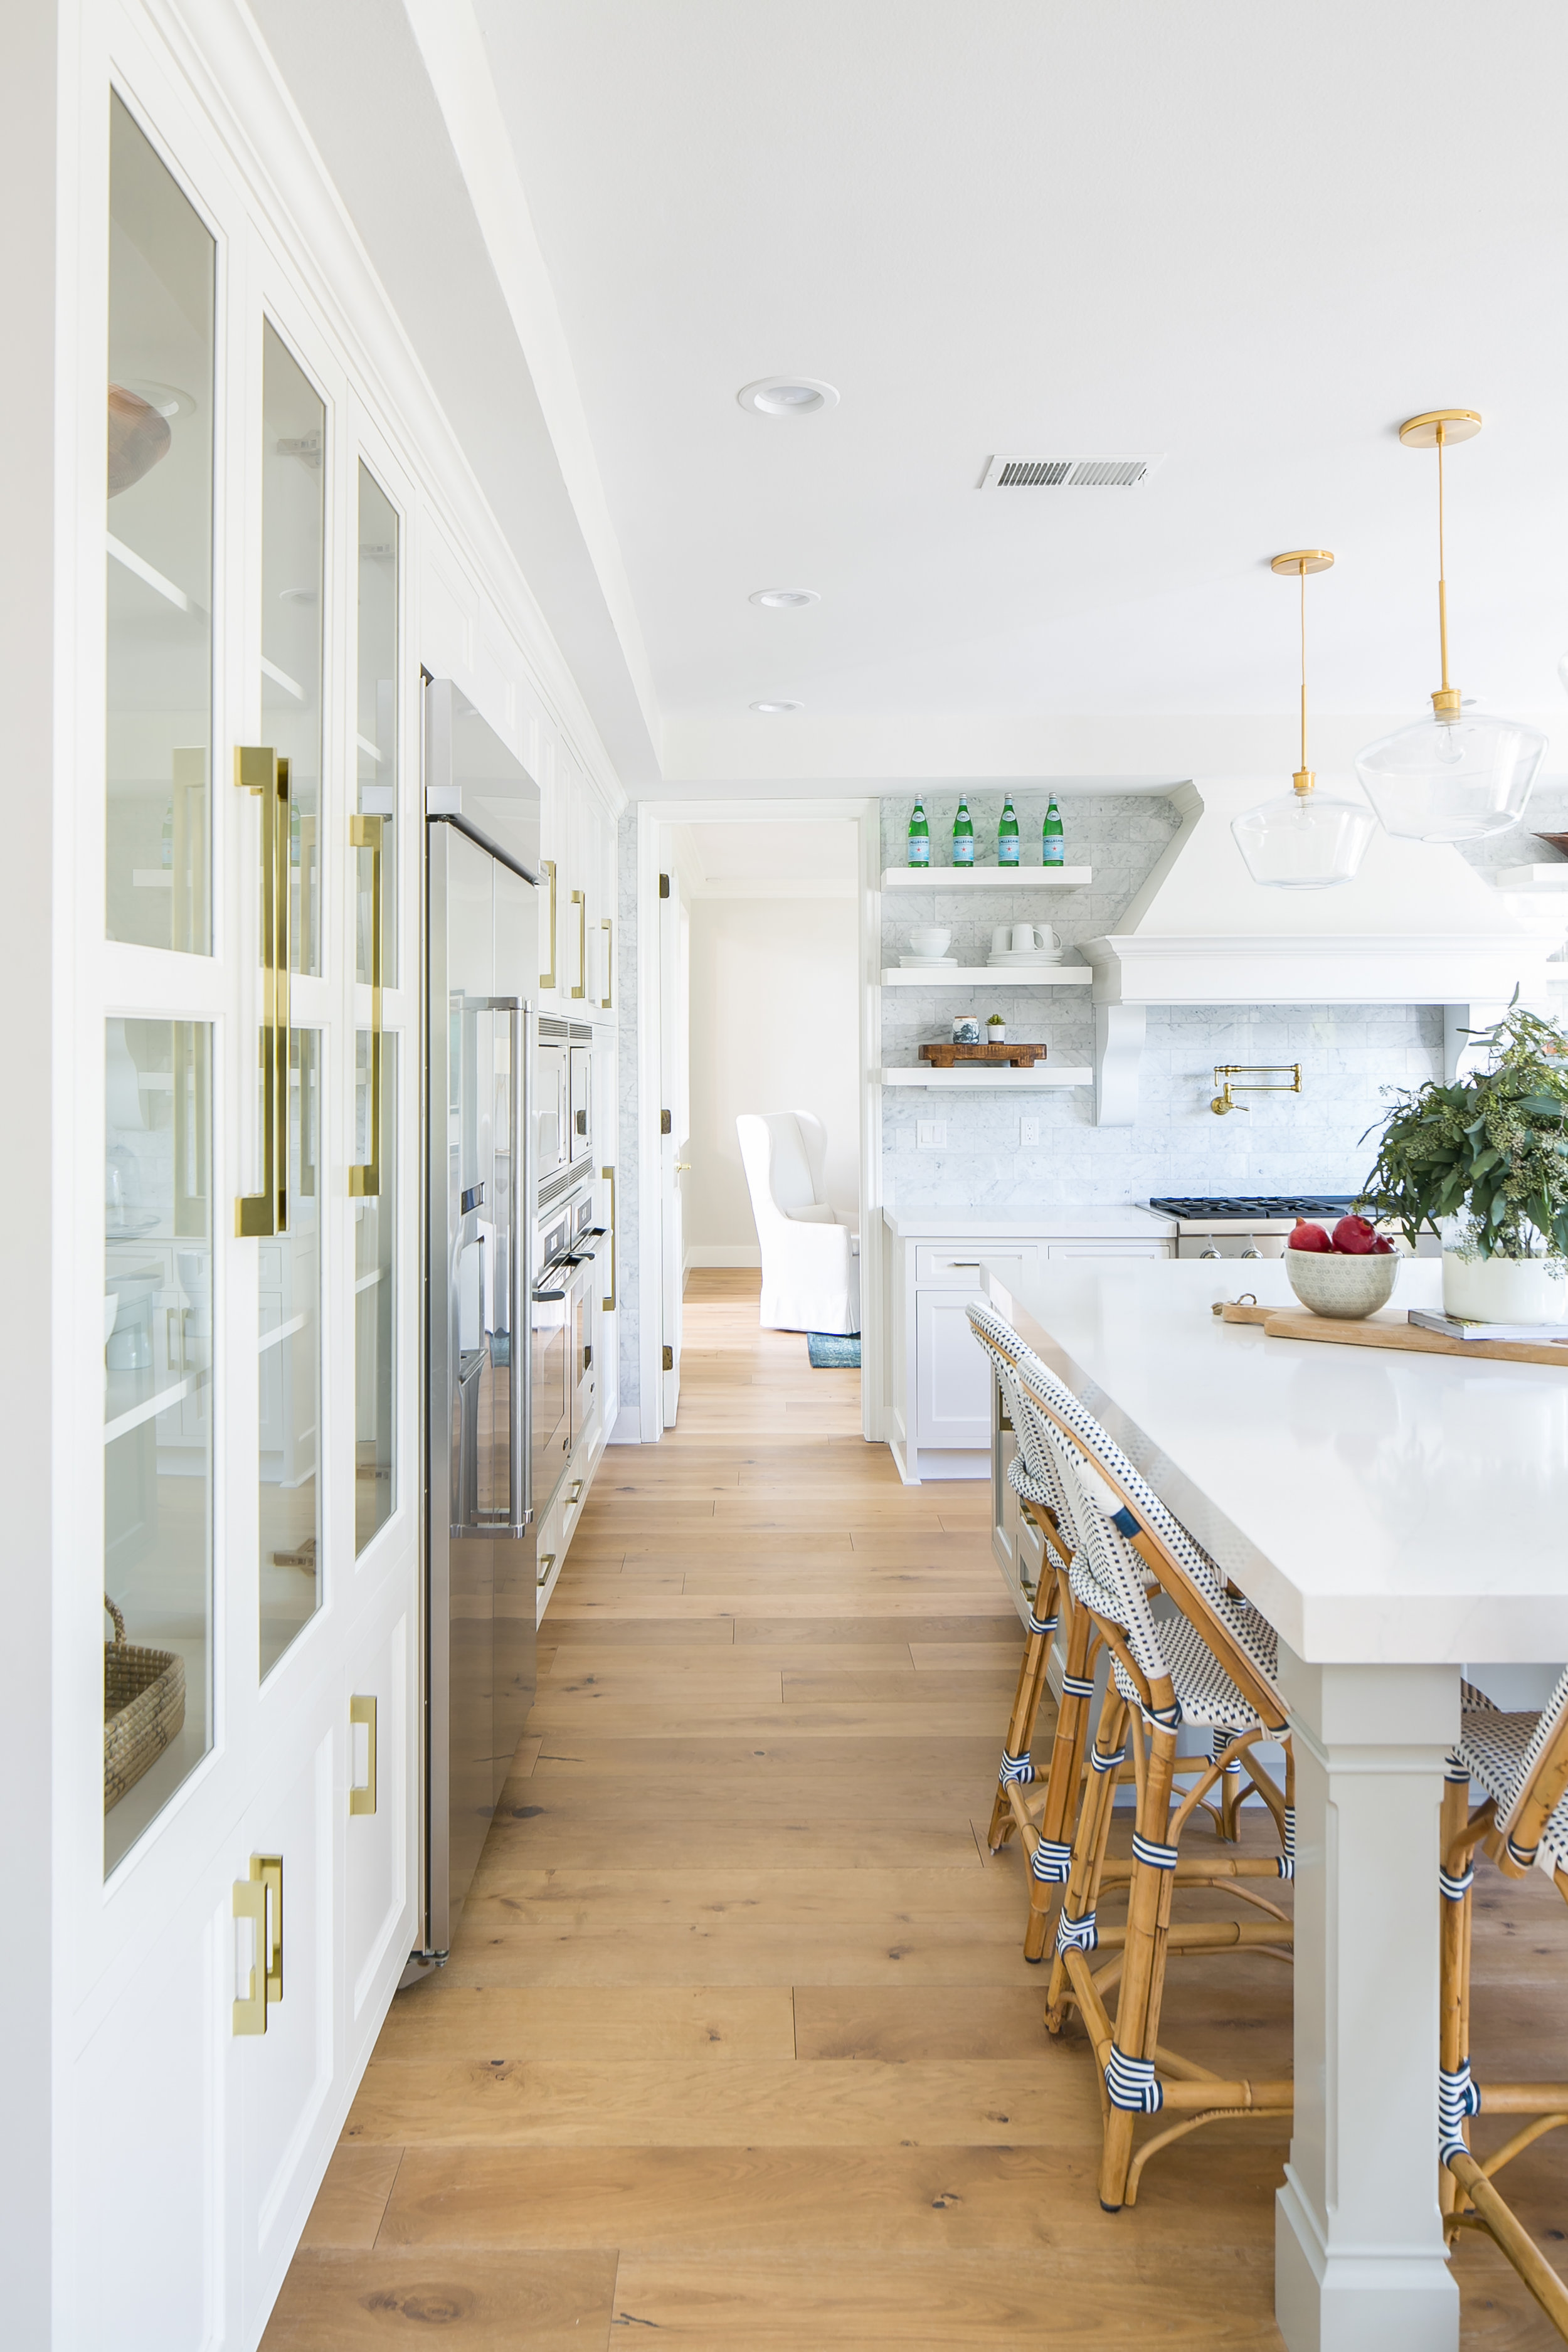 RosewoodInteriors_CotoProject2.JPG